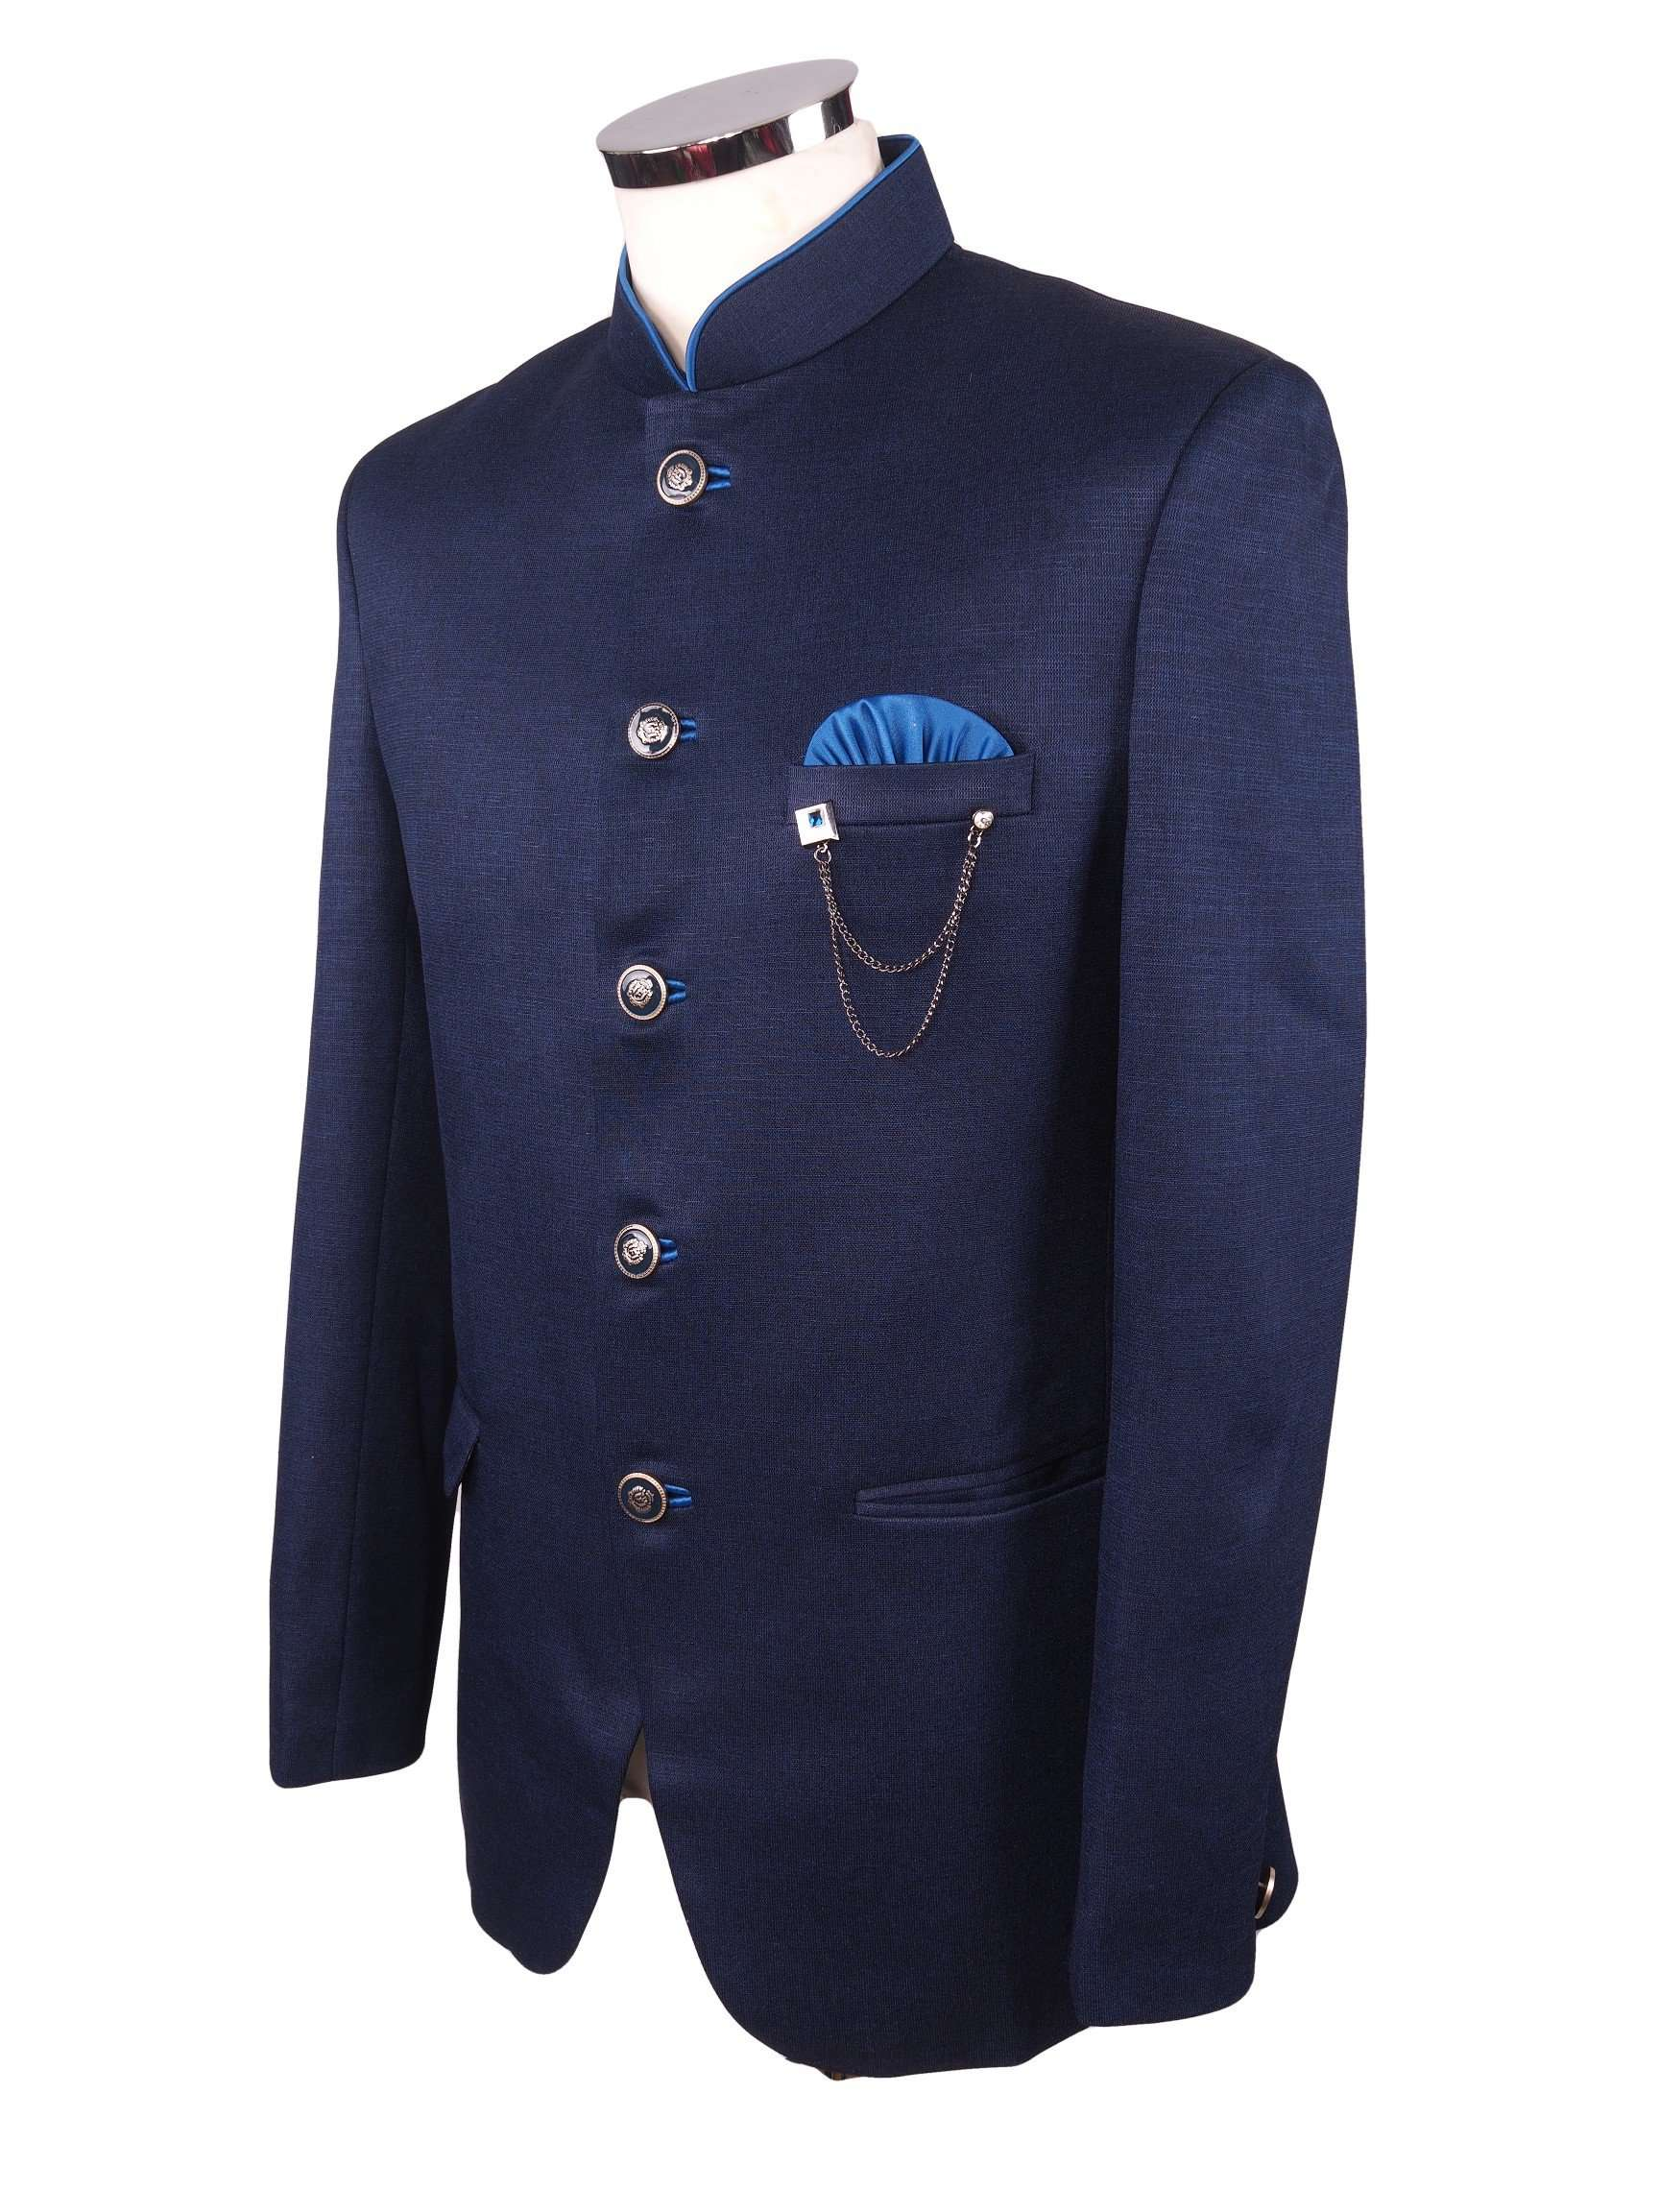 Mens Navy Blue BandhGala Nehru / Prince / Chinese Collar Jacket in Linen - Fantastic Fit - BGJ1901JY - Prachy Creations